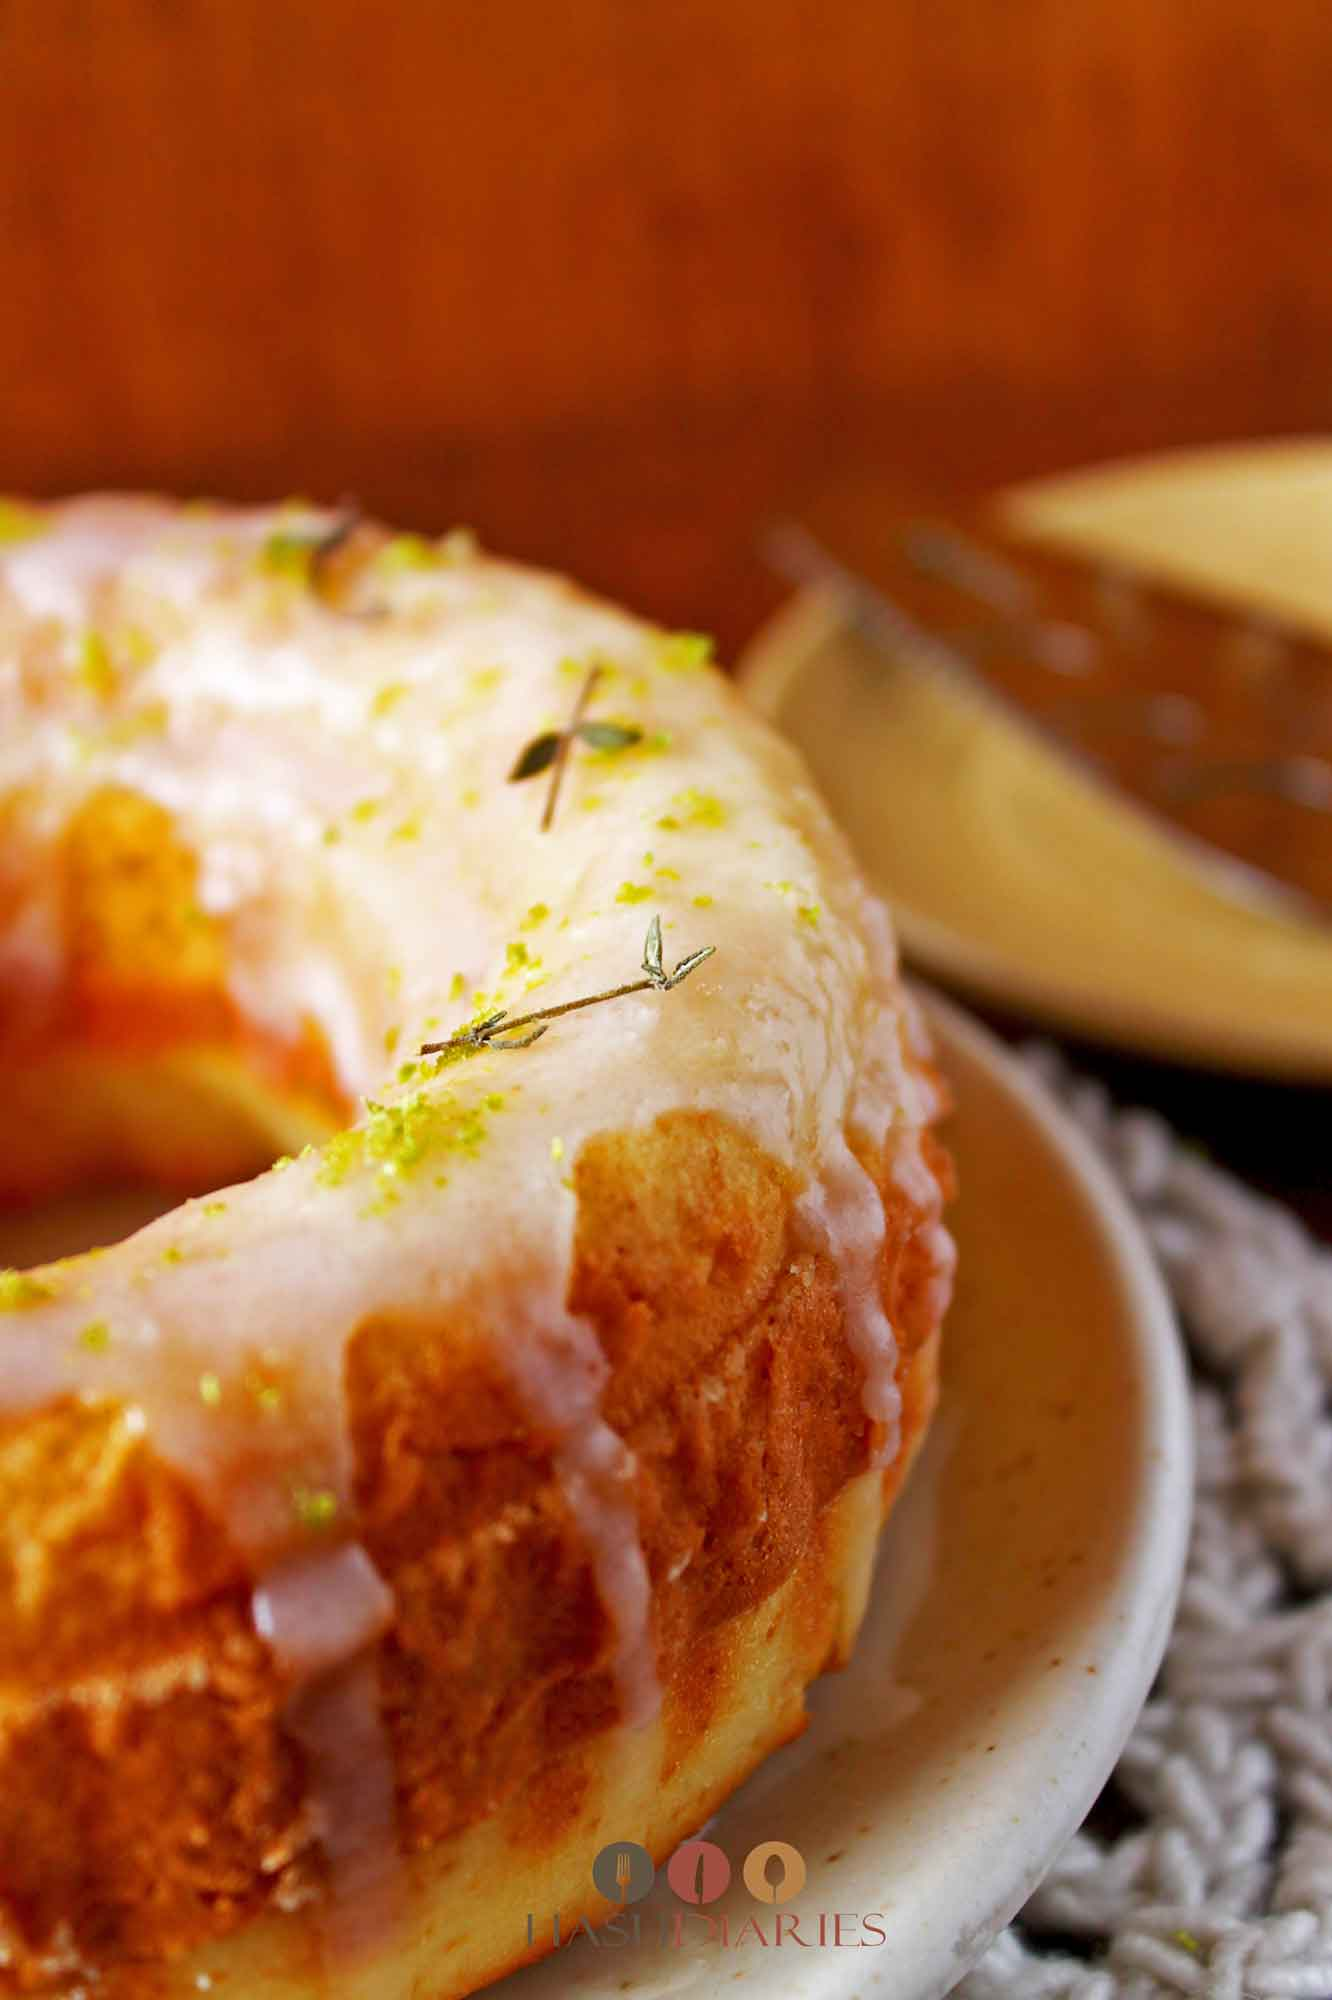 Lemon Thyme Glazed Cake Recipe